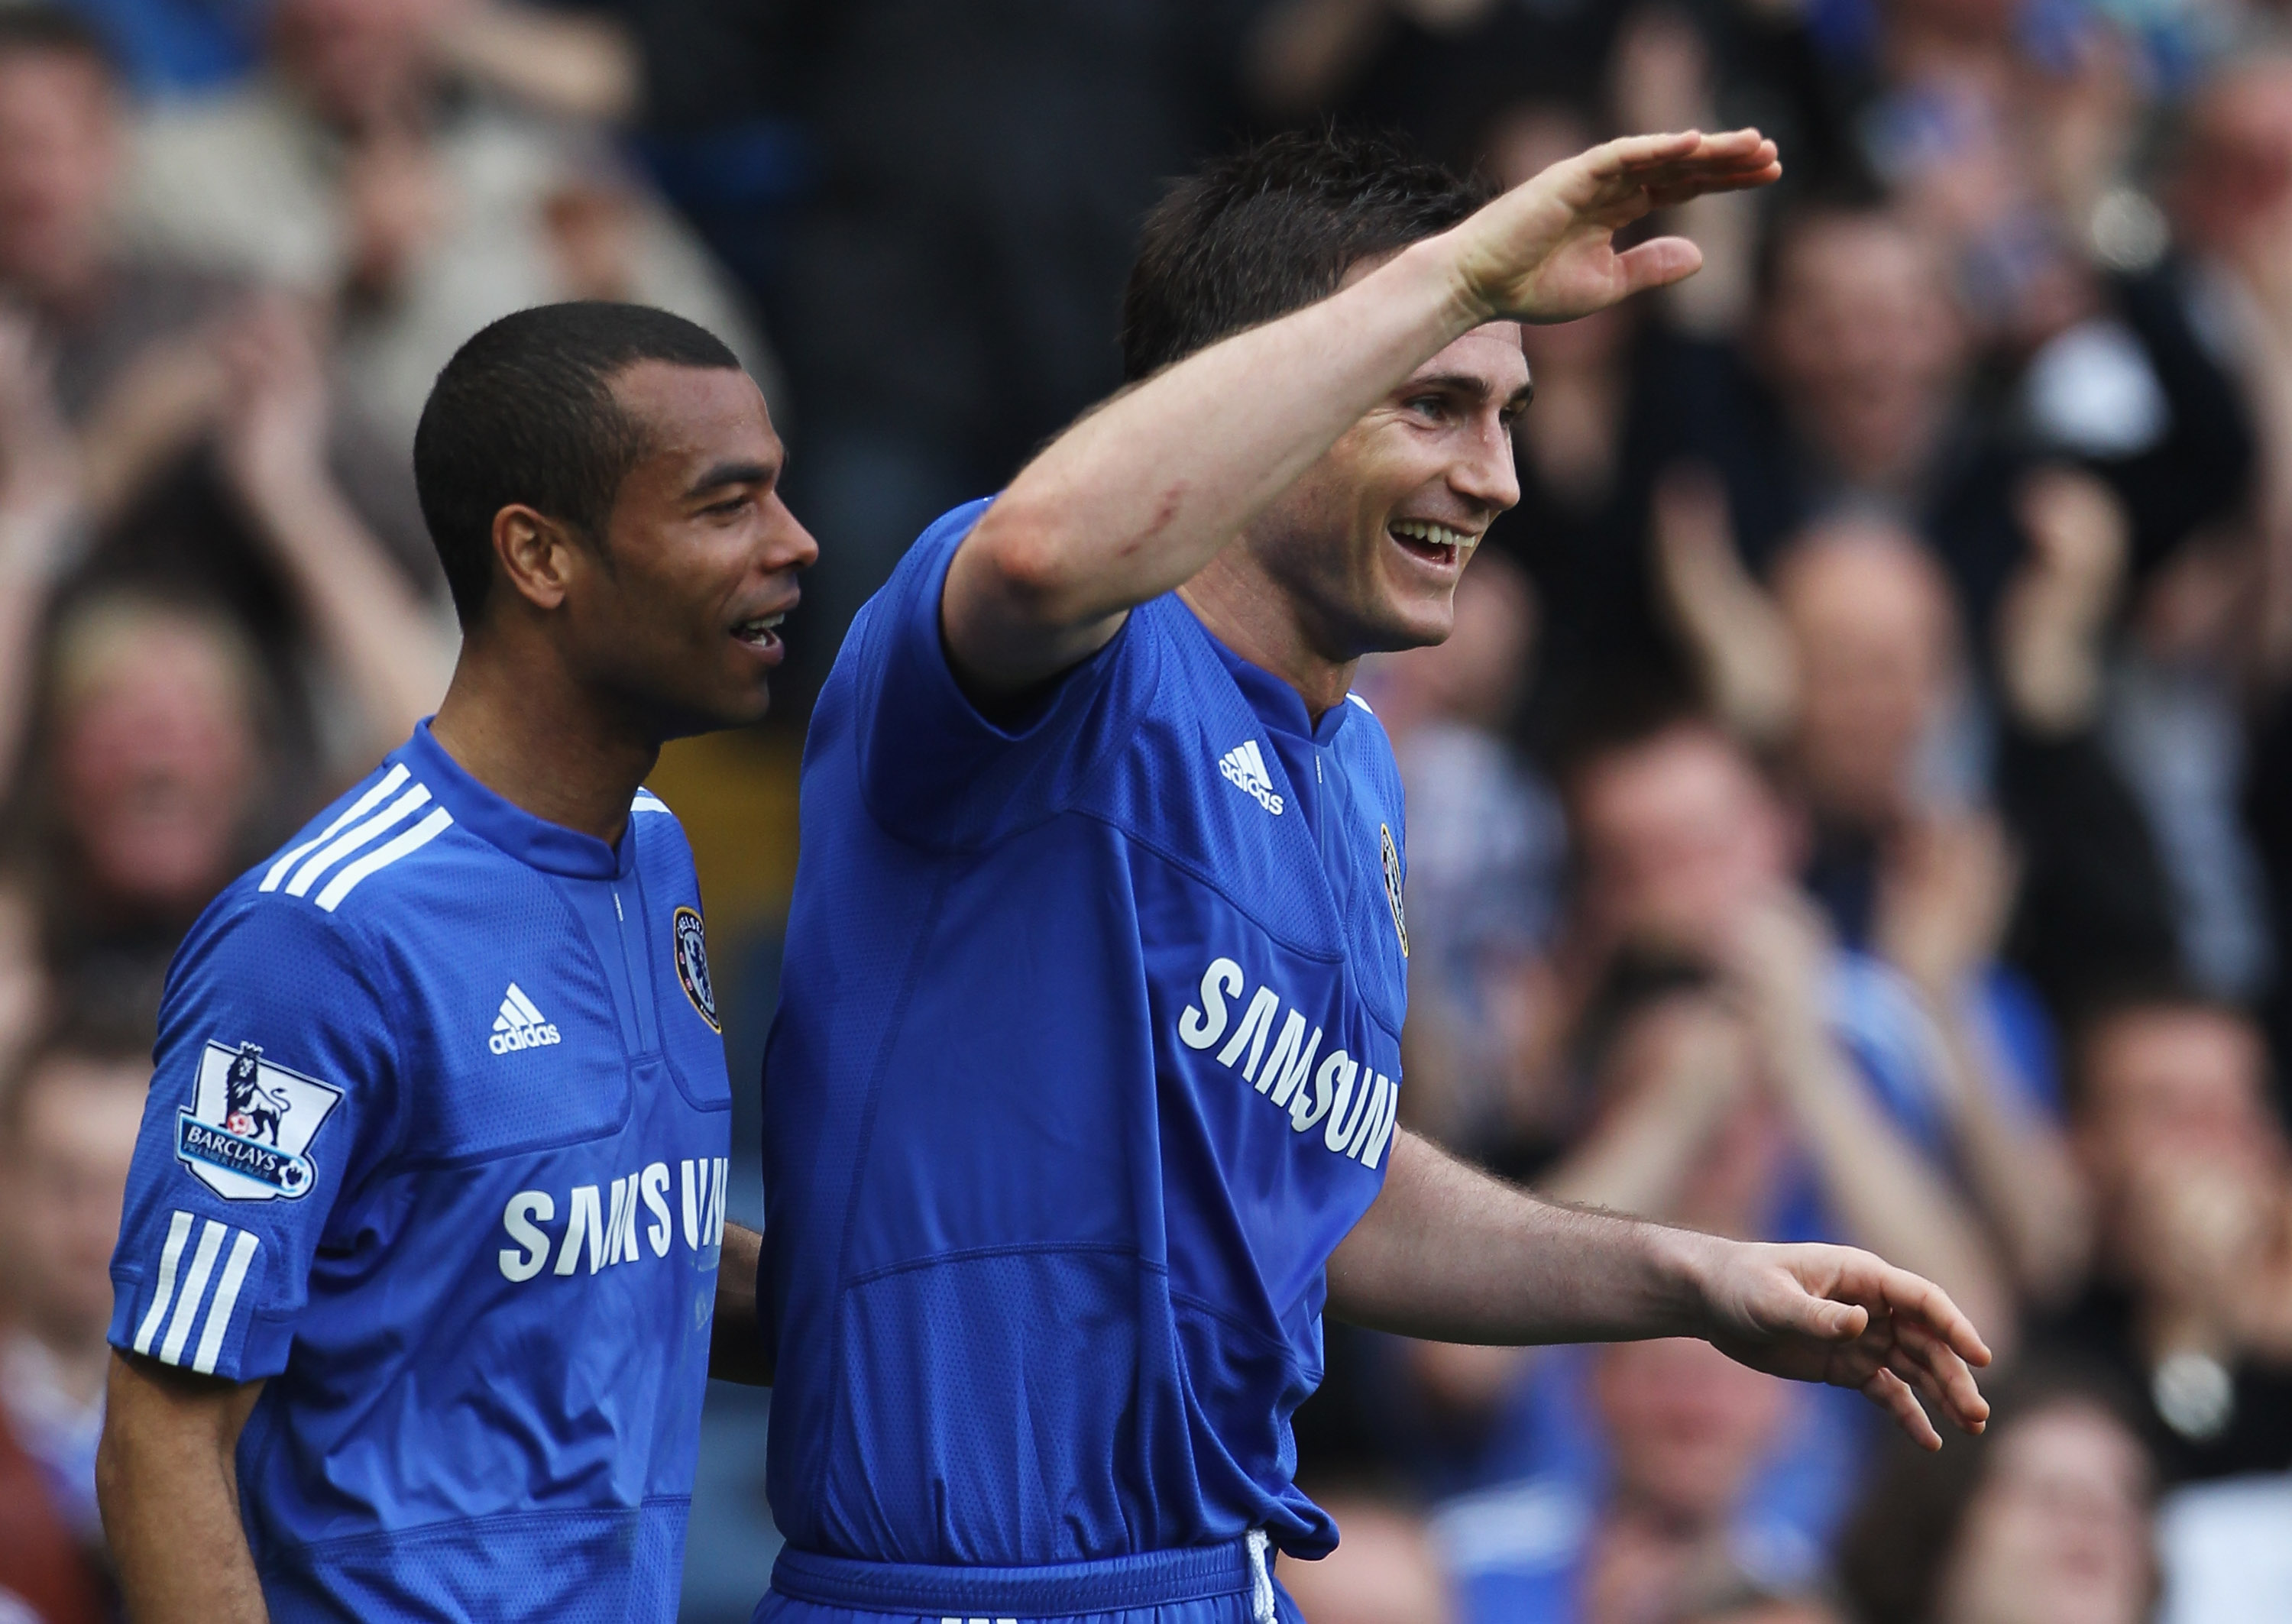 Ashley Cole poised to be reunited with Frank Lampard at Derby County